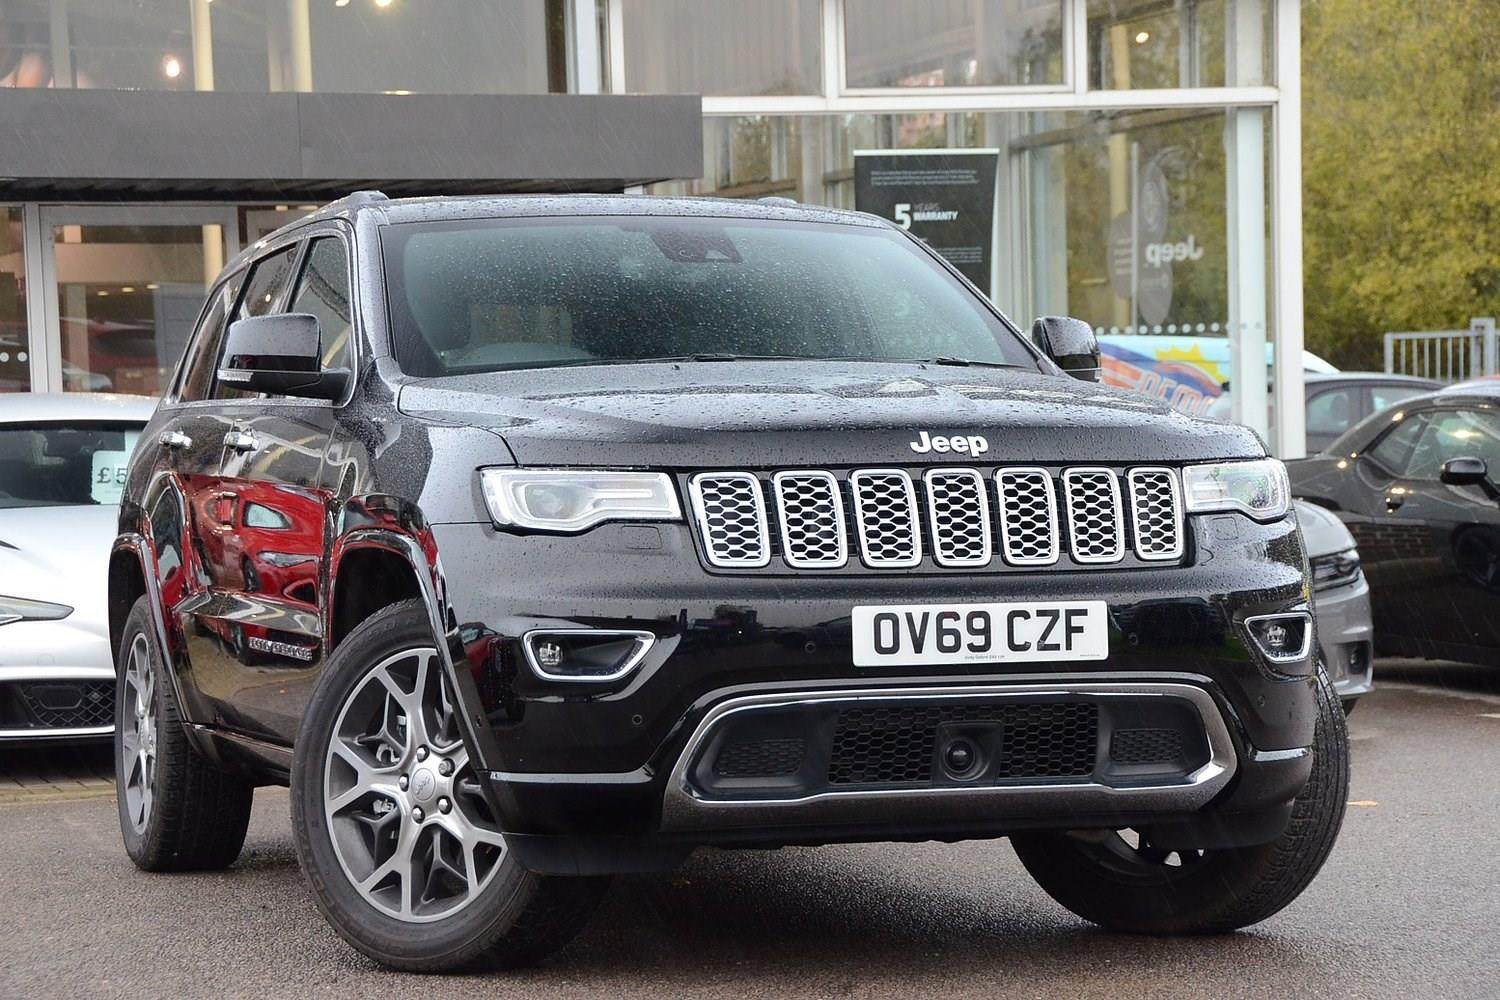 Jeep Grand Cherokee 3.0 Multijet II (247bhp) 4WD Overland Estate Diesel Diamond Black Crystal Metallic